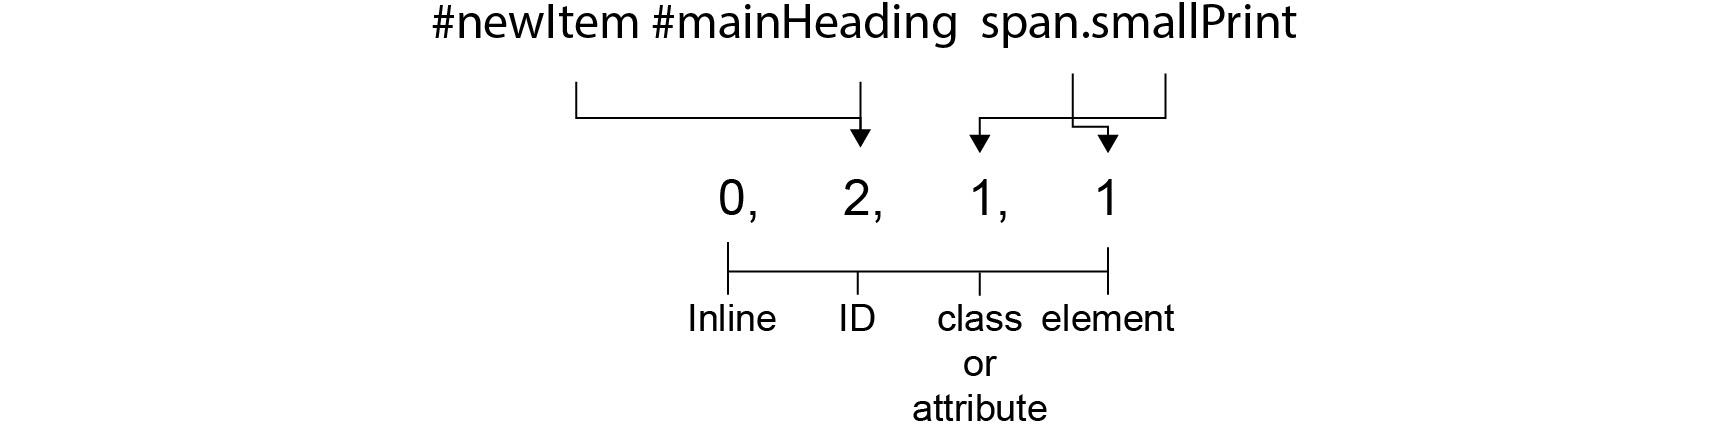 Figure 1.31: Calculating the specificity of #newItem #mainHeading span.smallPrint